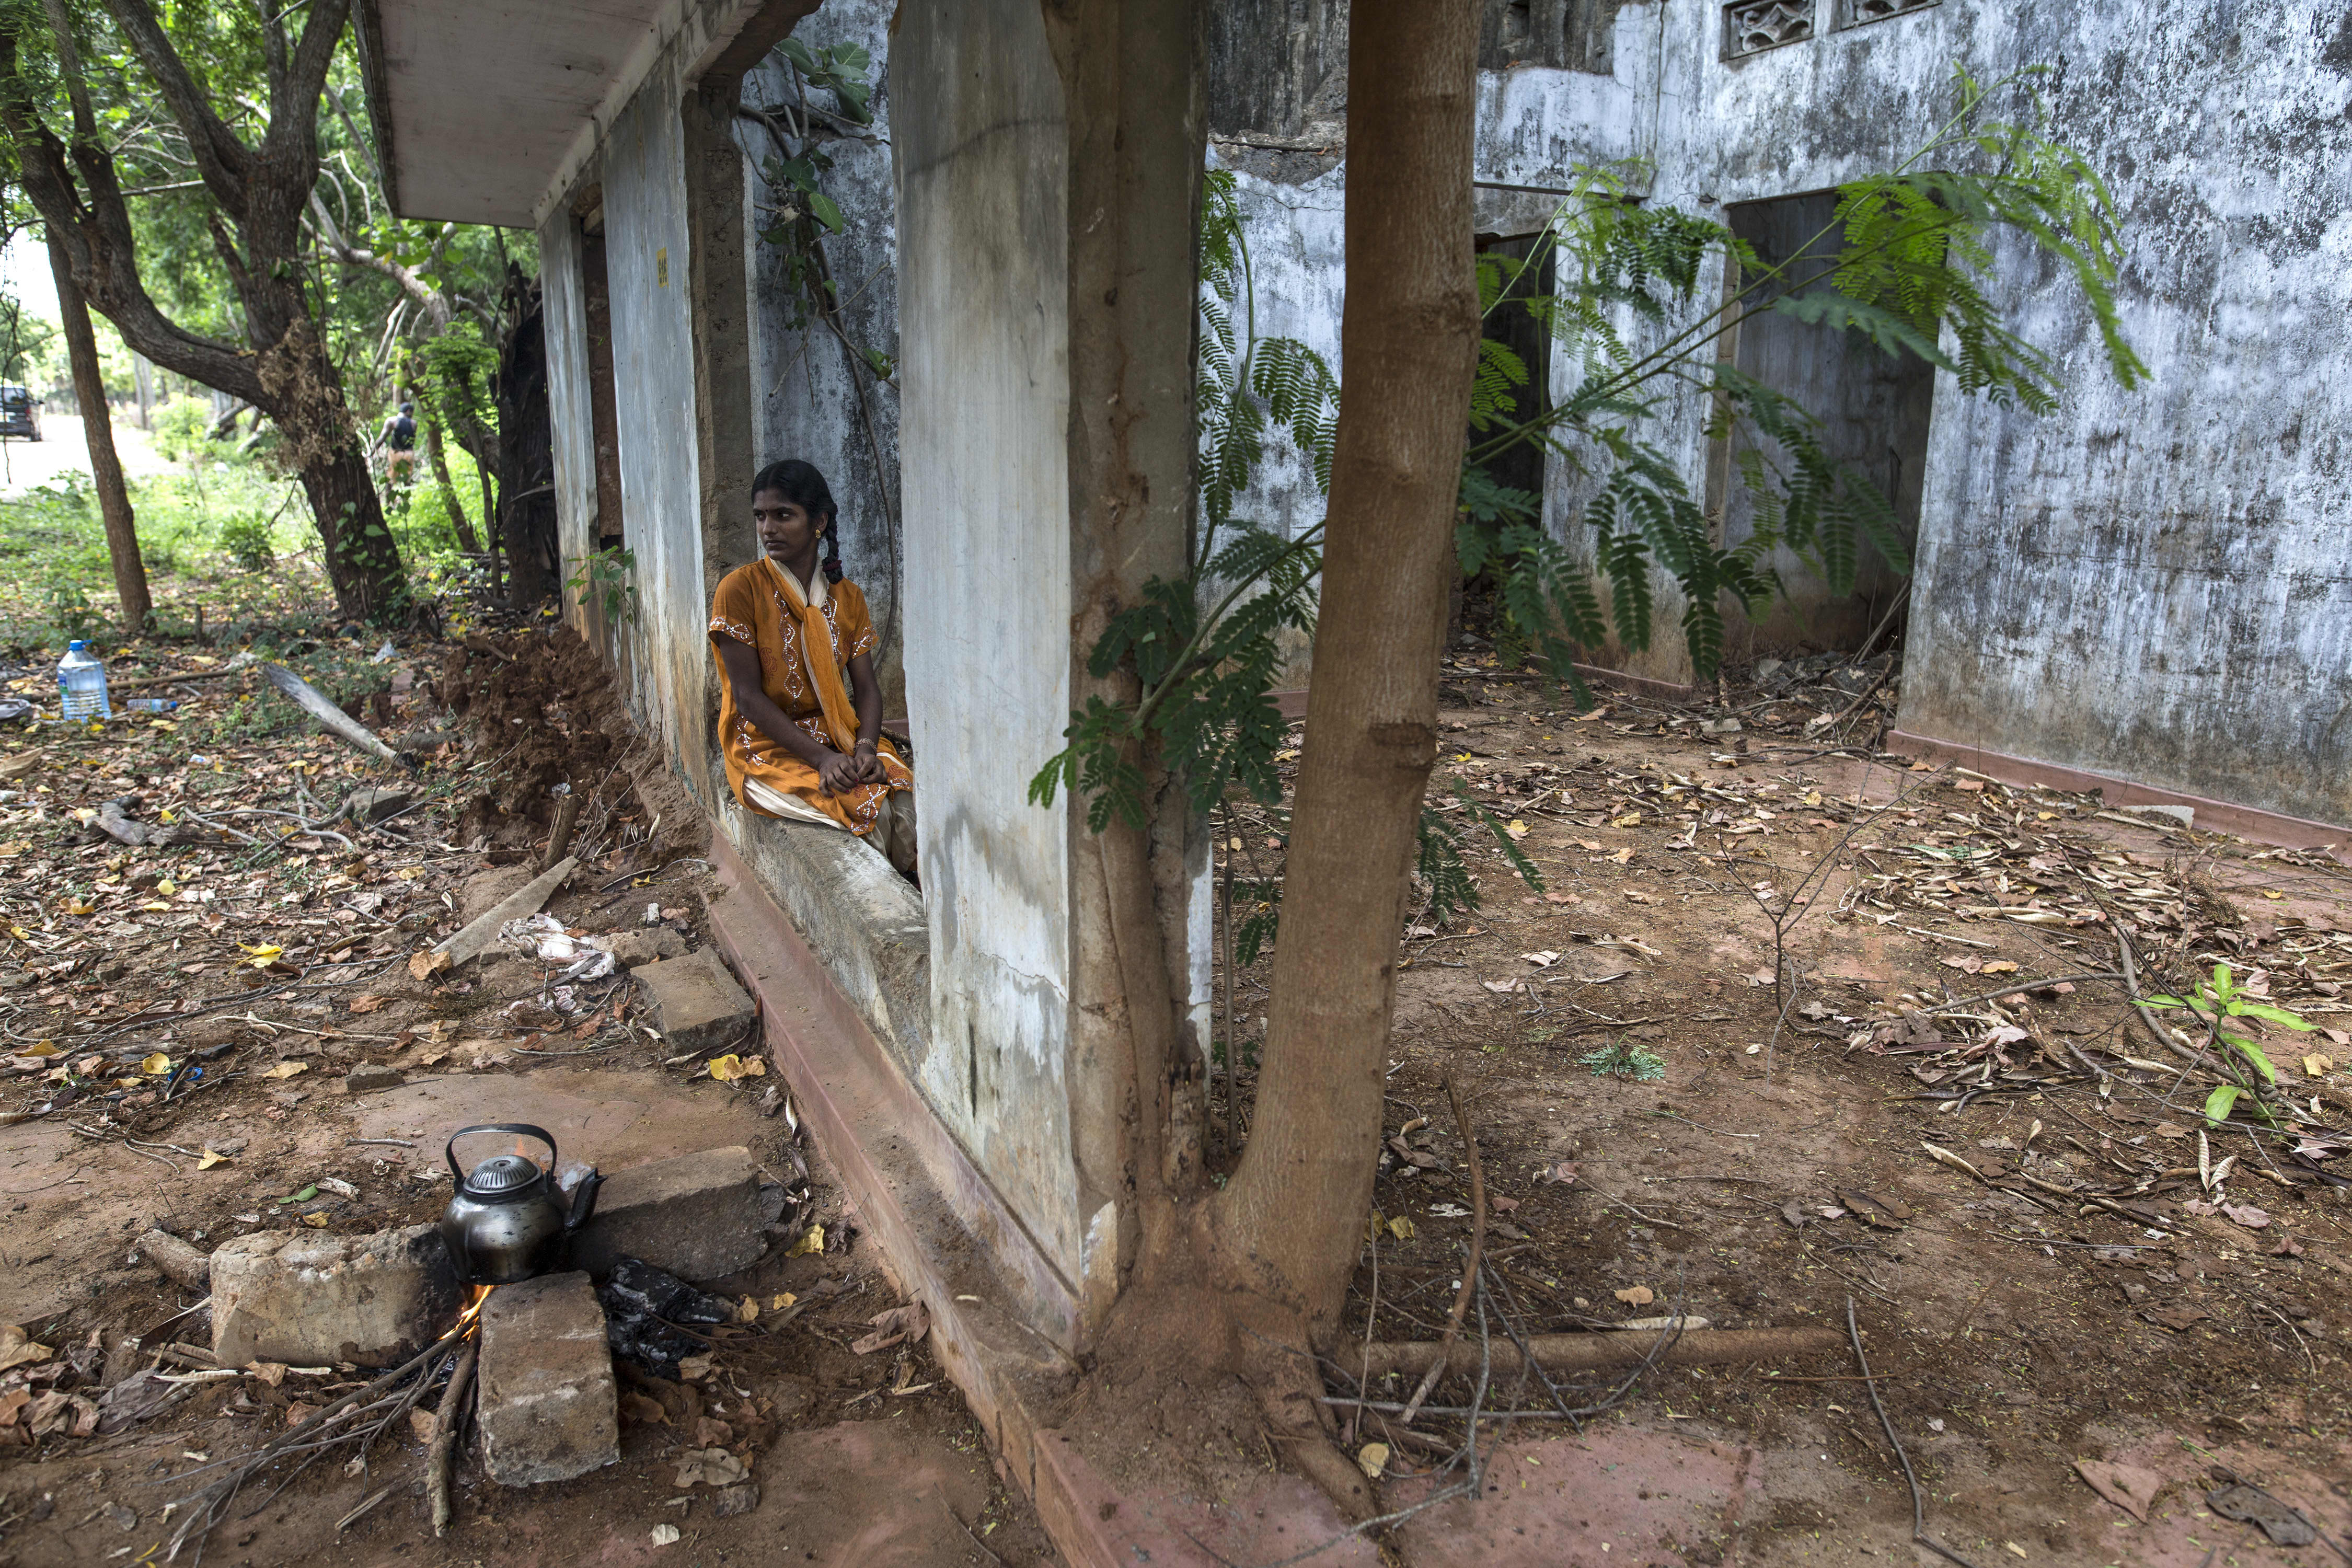 Kasthari Udayakumaran sits in a vacant home belonging to her family in Tellippalai, Jaffna--an area that used to be a high security zone. Recently, it was released back to the land owners by the Sri Lankan military.